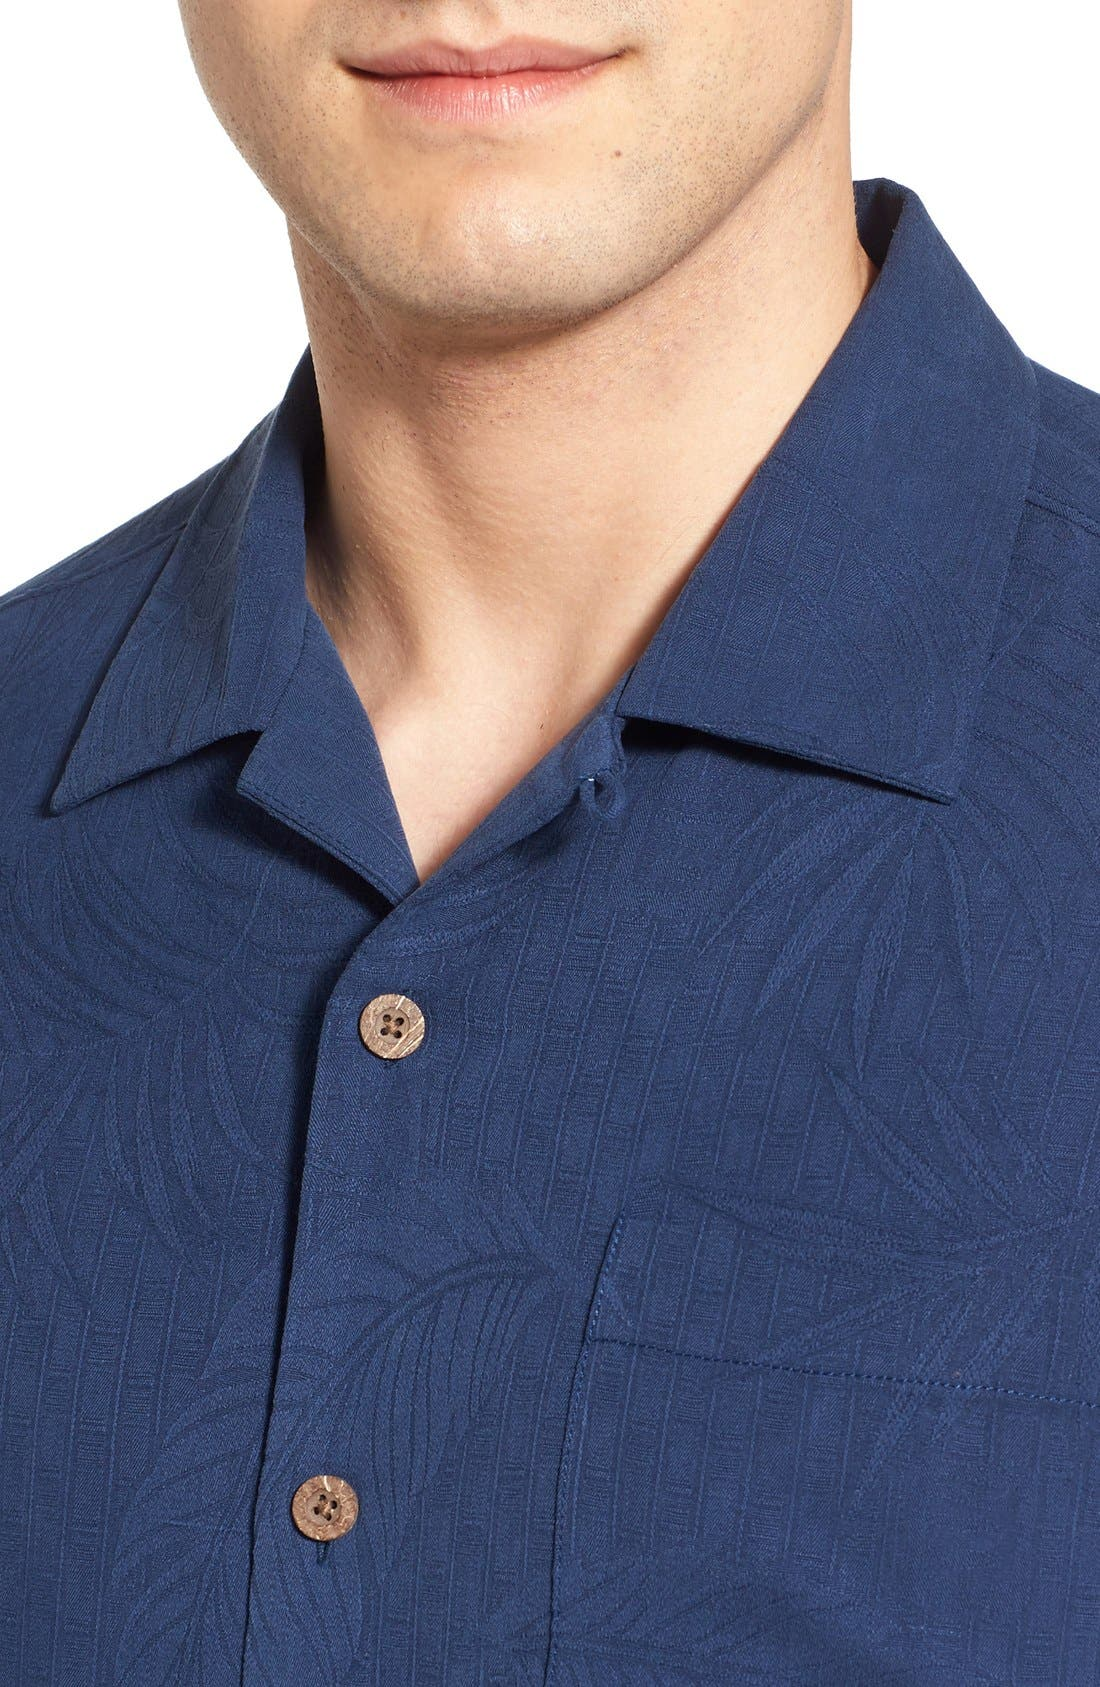 'Tiki Palms' Original Fit Jacquard Silk Camp Shirt,                             Alternate thumbnail 8, color,